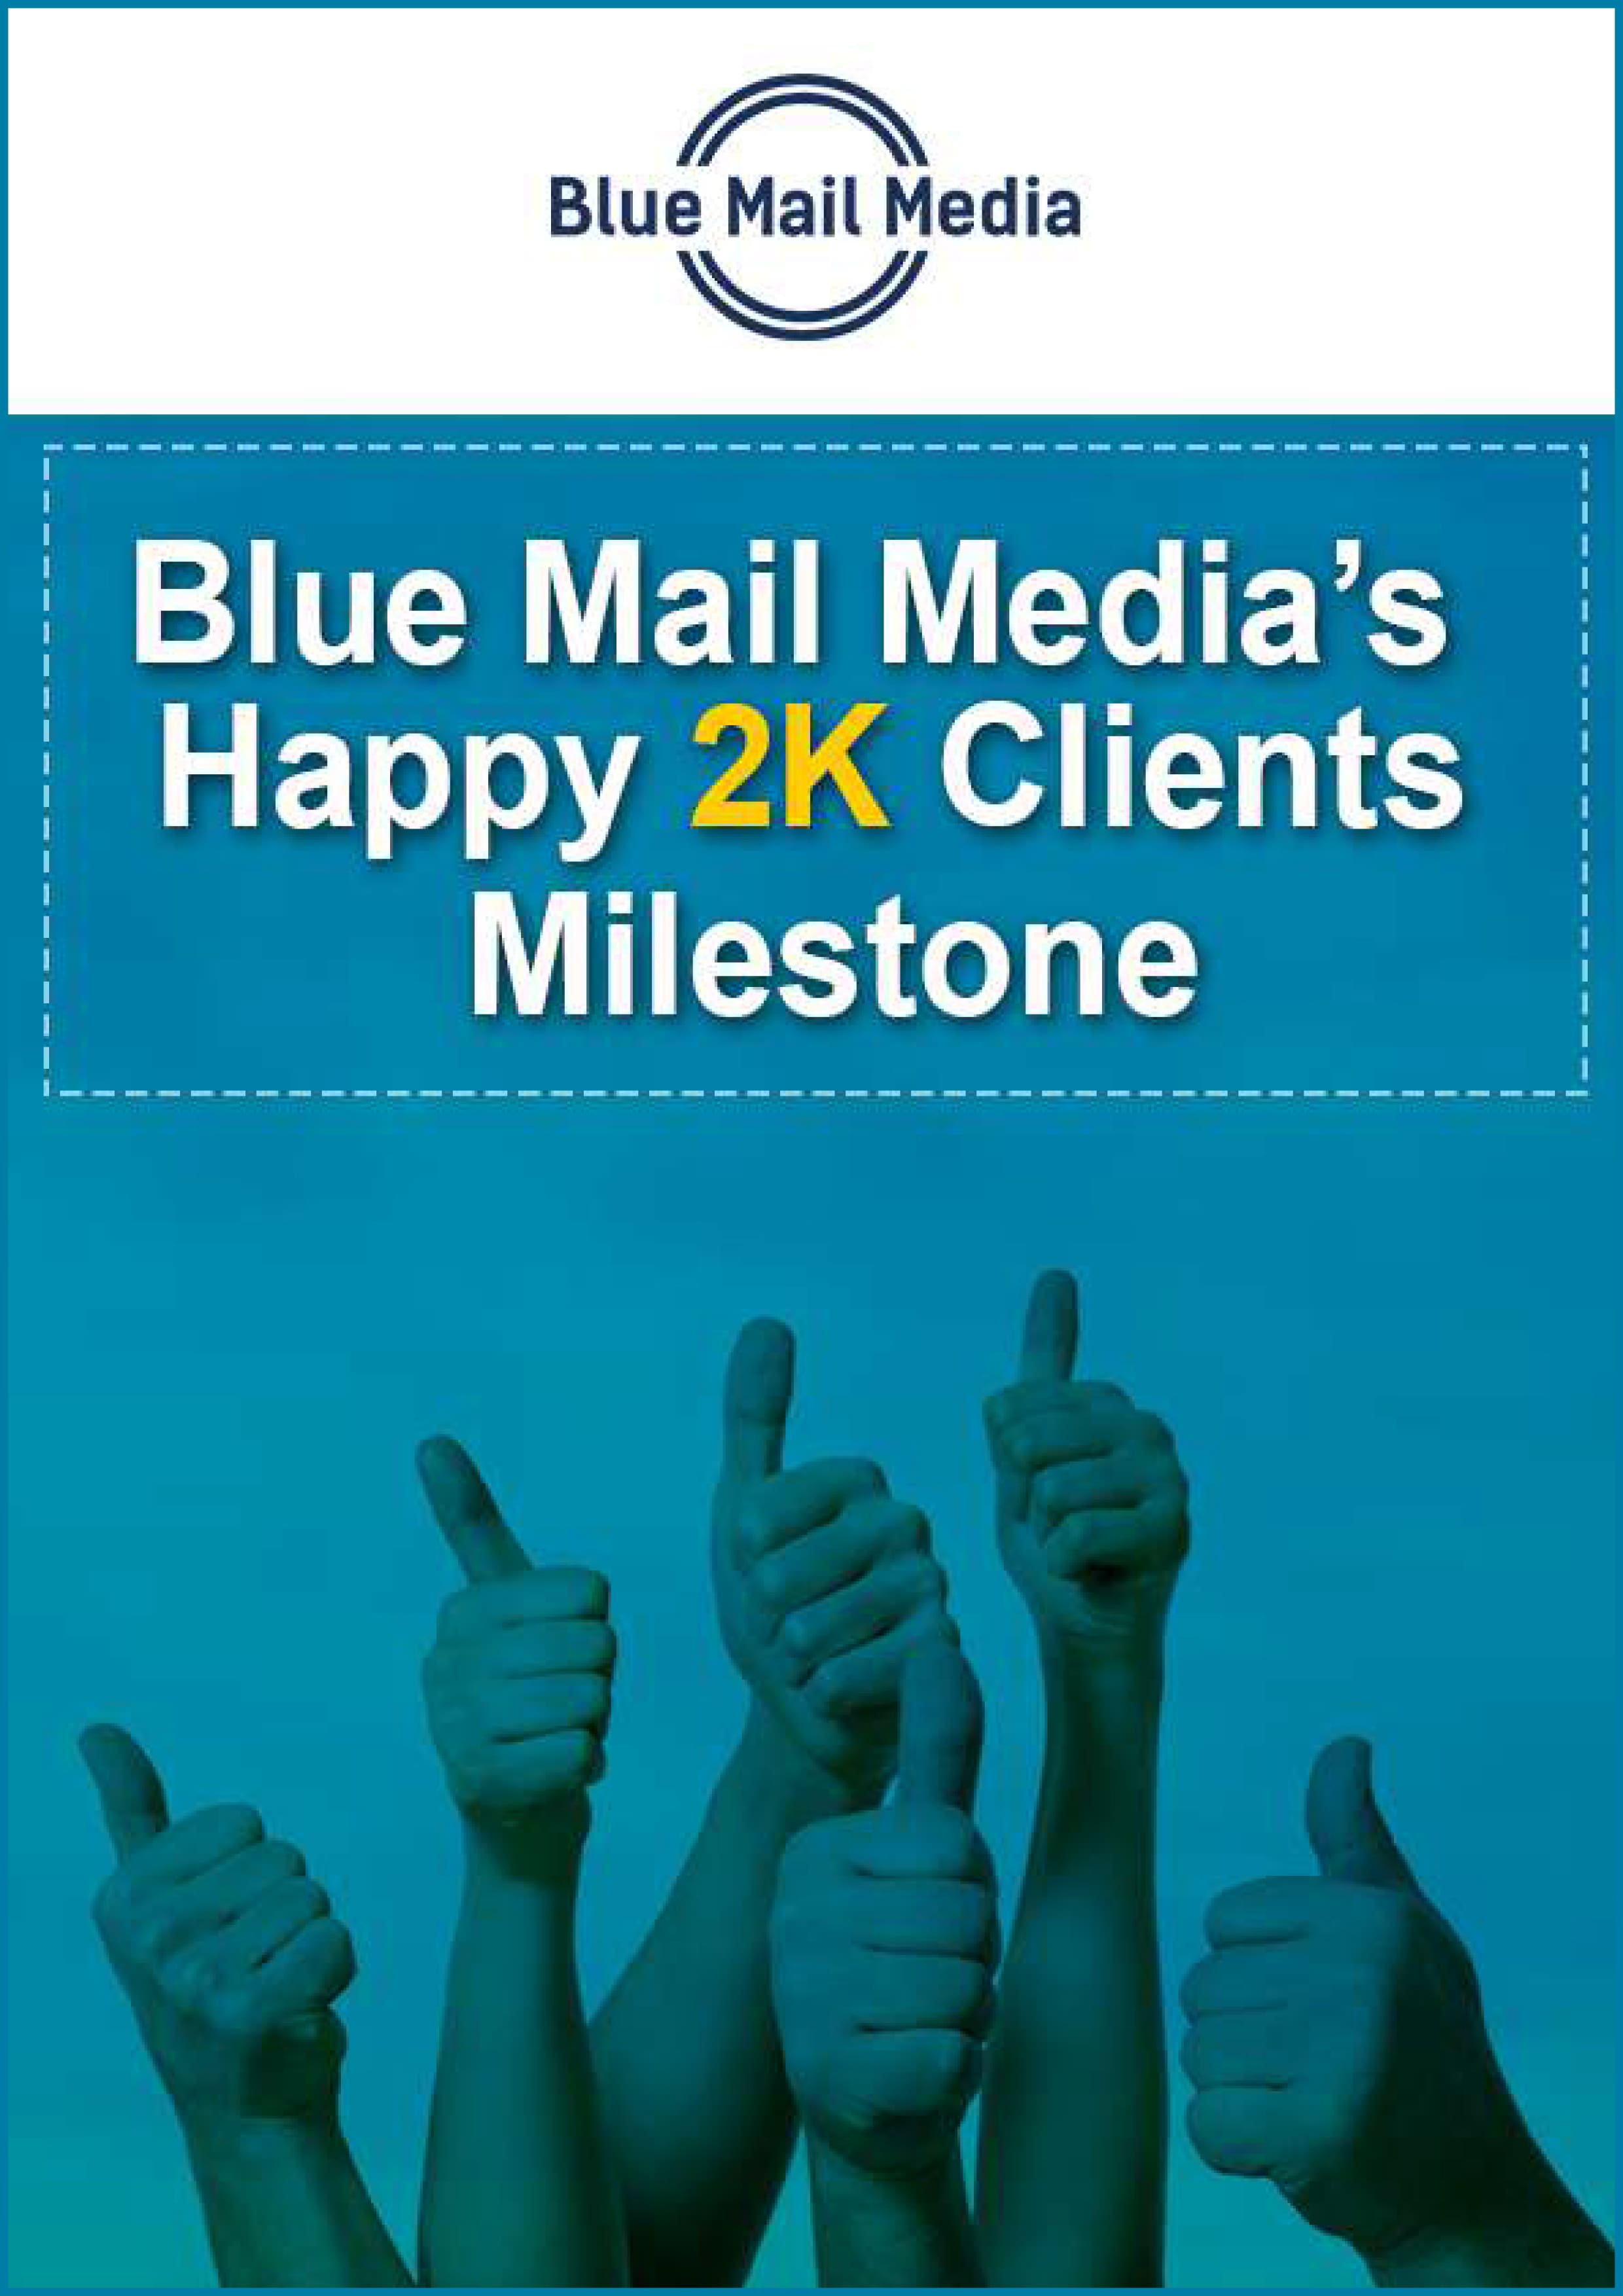 Happy 2k clients milestone